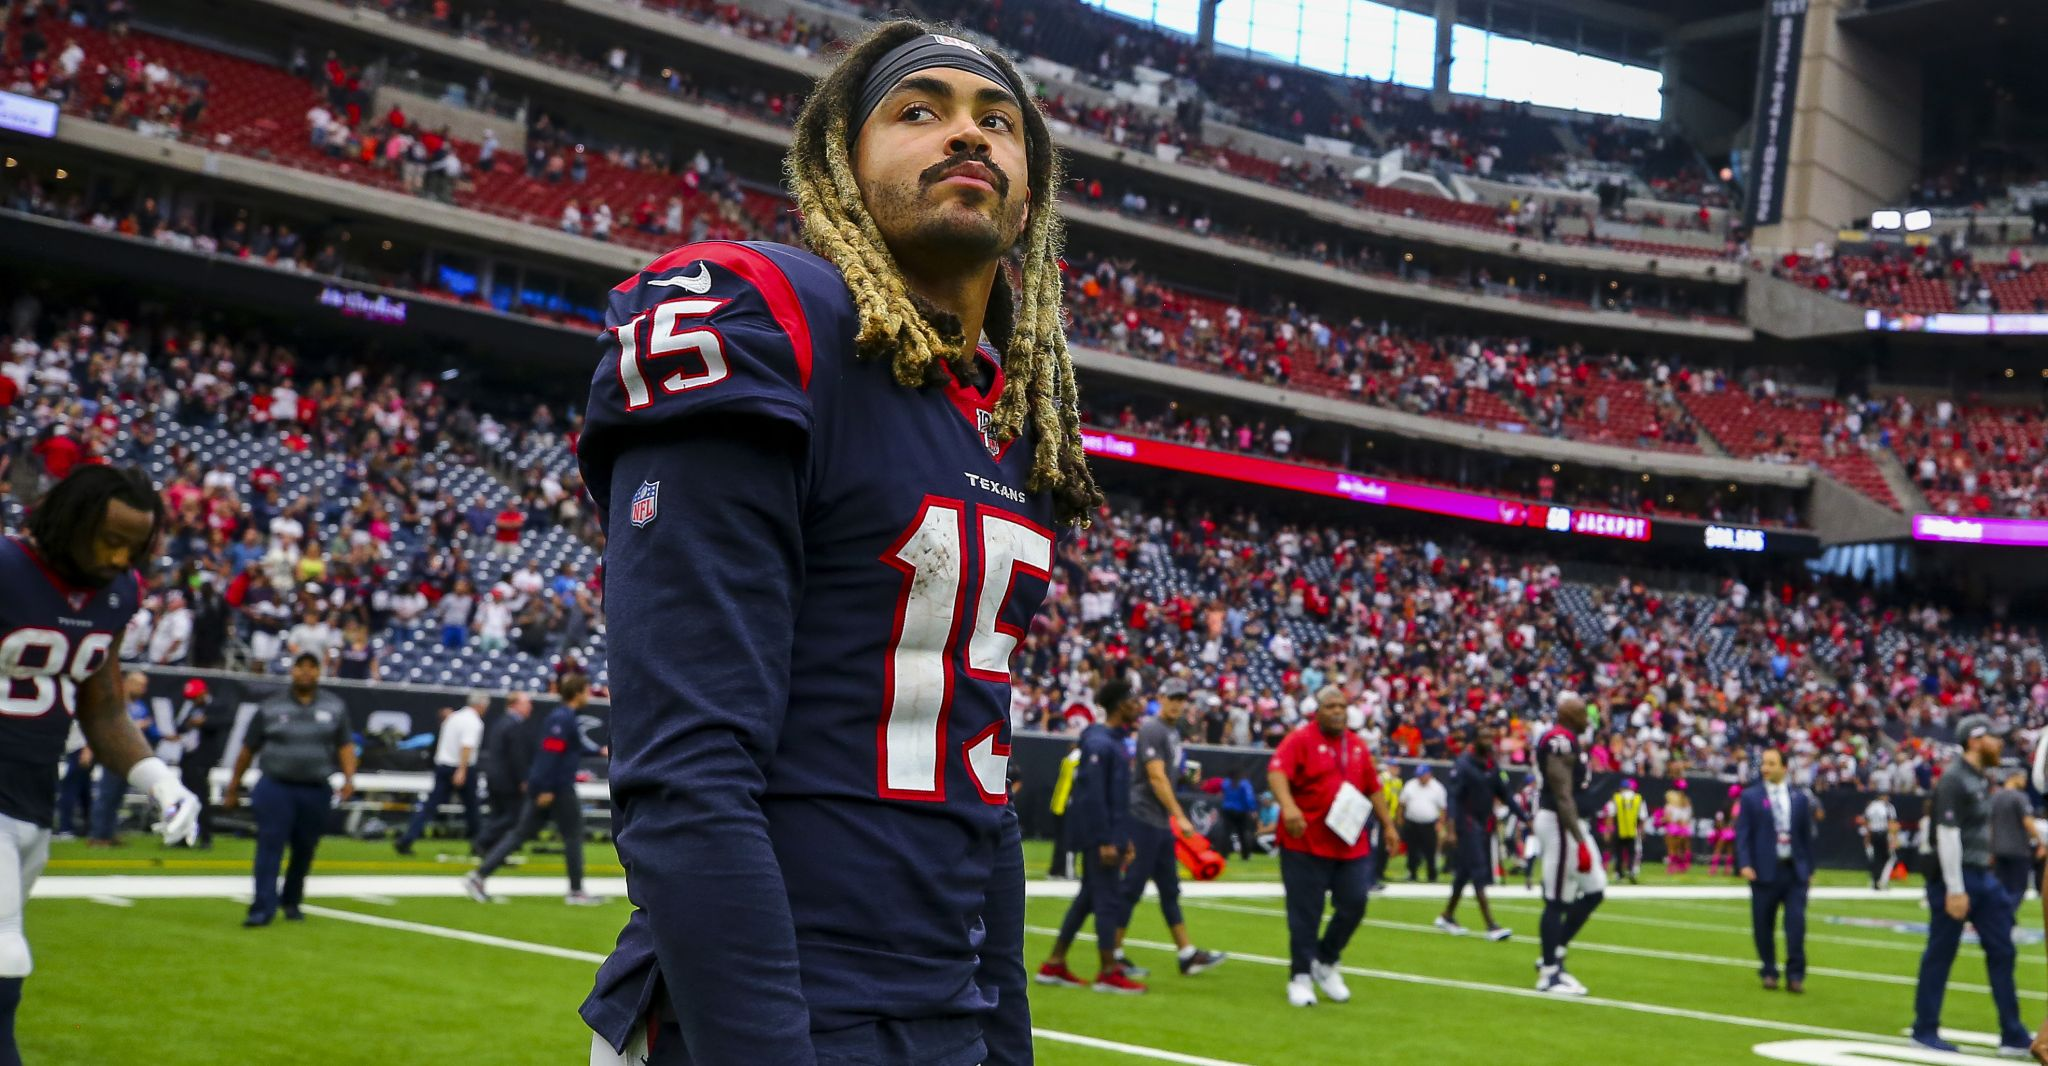 Texans coach Bill O'Brien noncommittal on Will Fuller's status